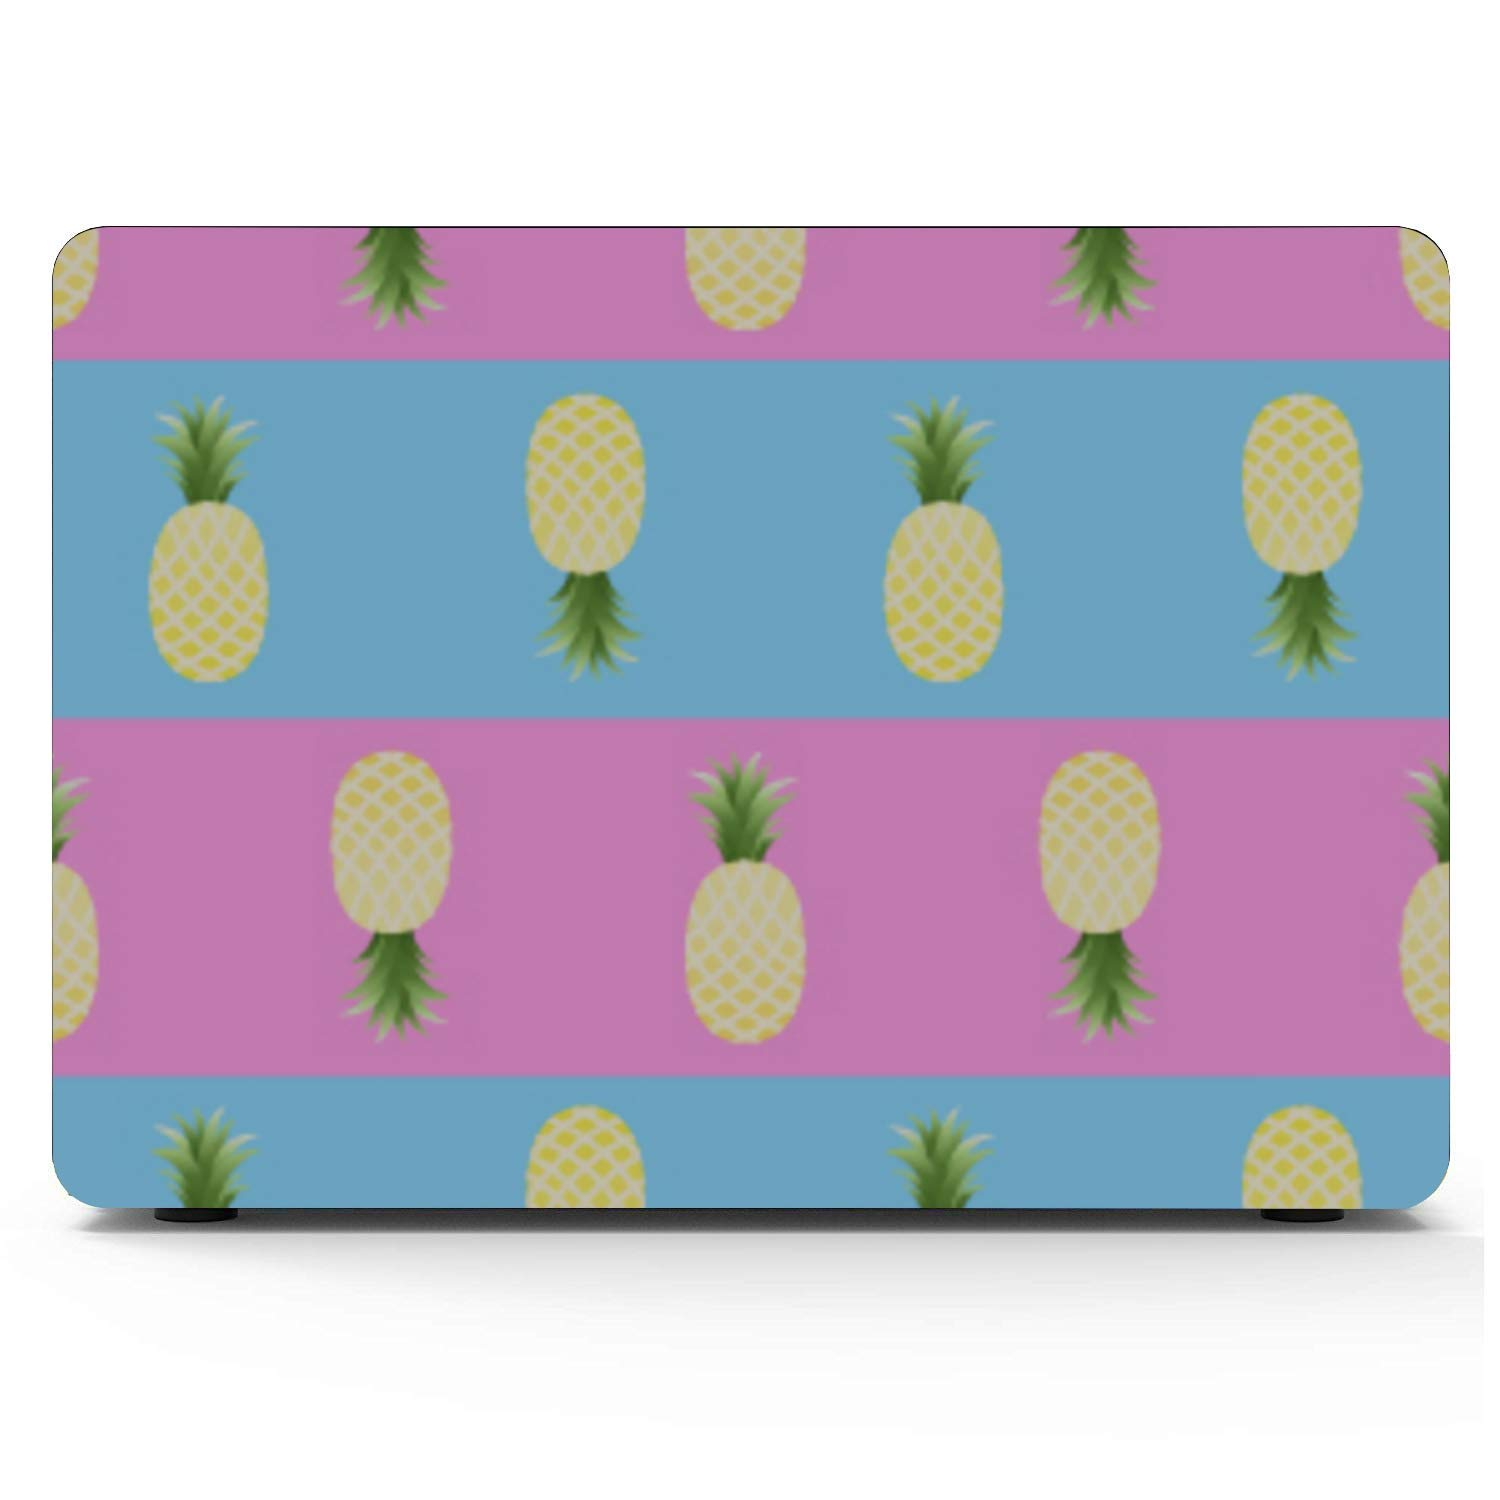 Laptop Shell Case Summer Sweet Fresh Fruit Pineapple Plastic Hard Shell Compatible Mac Air 11 Pro 13 15 MacBook Air Laptop Case Protection for MacBook 2016-2019 Version